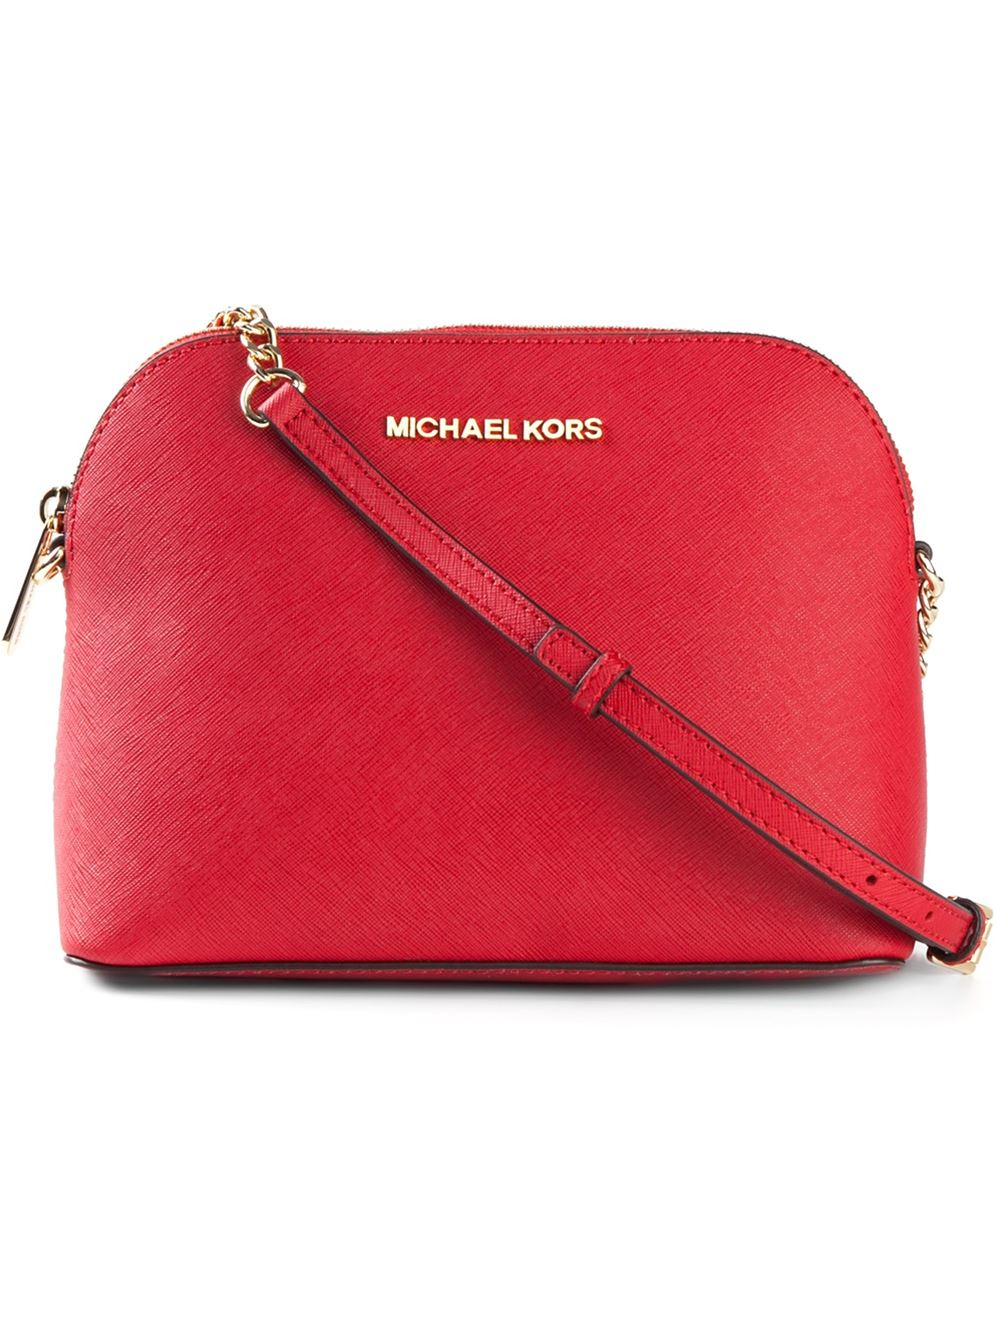 617585ce4ae5ad Gallery. Previously sold at: Farfetch · Women's Michael Kors Cindy